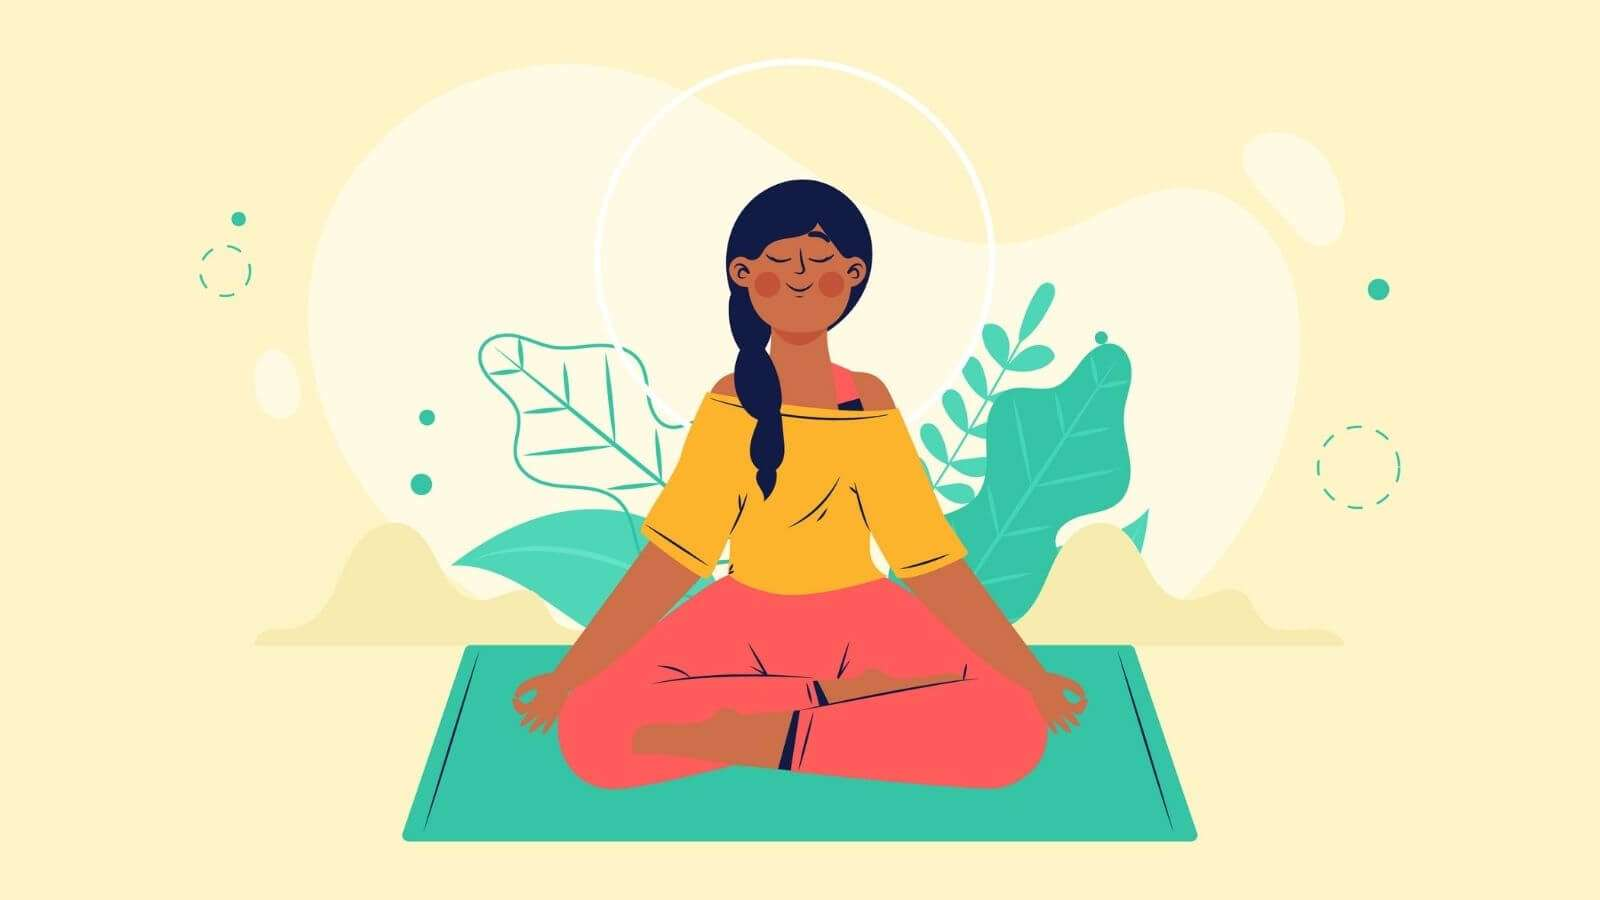 15 Easy Mindfulness Activities to Help You Deal With Anxiety, Depression, and Trauma